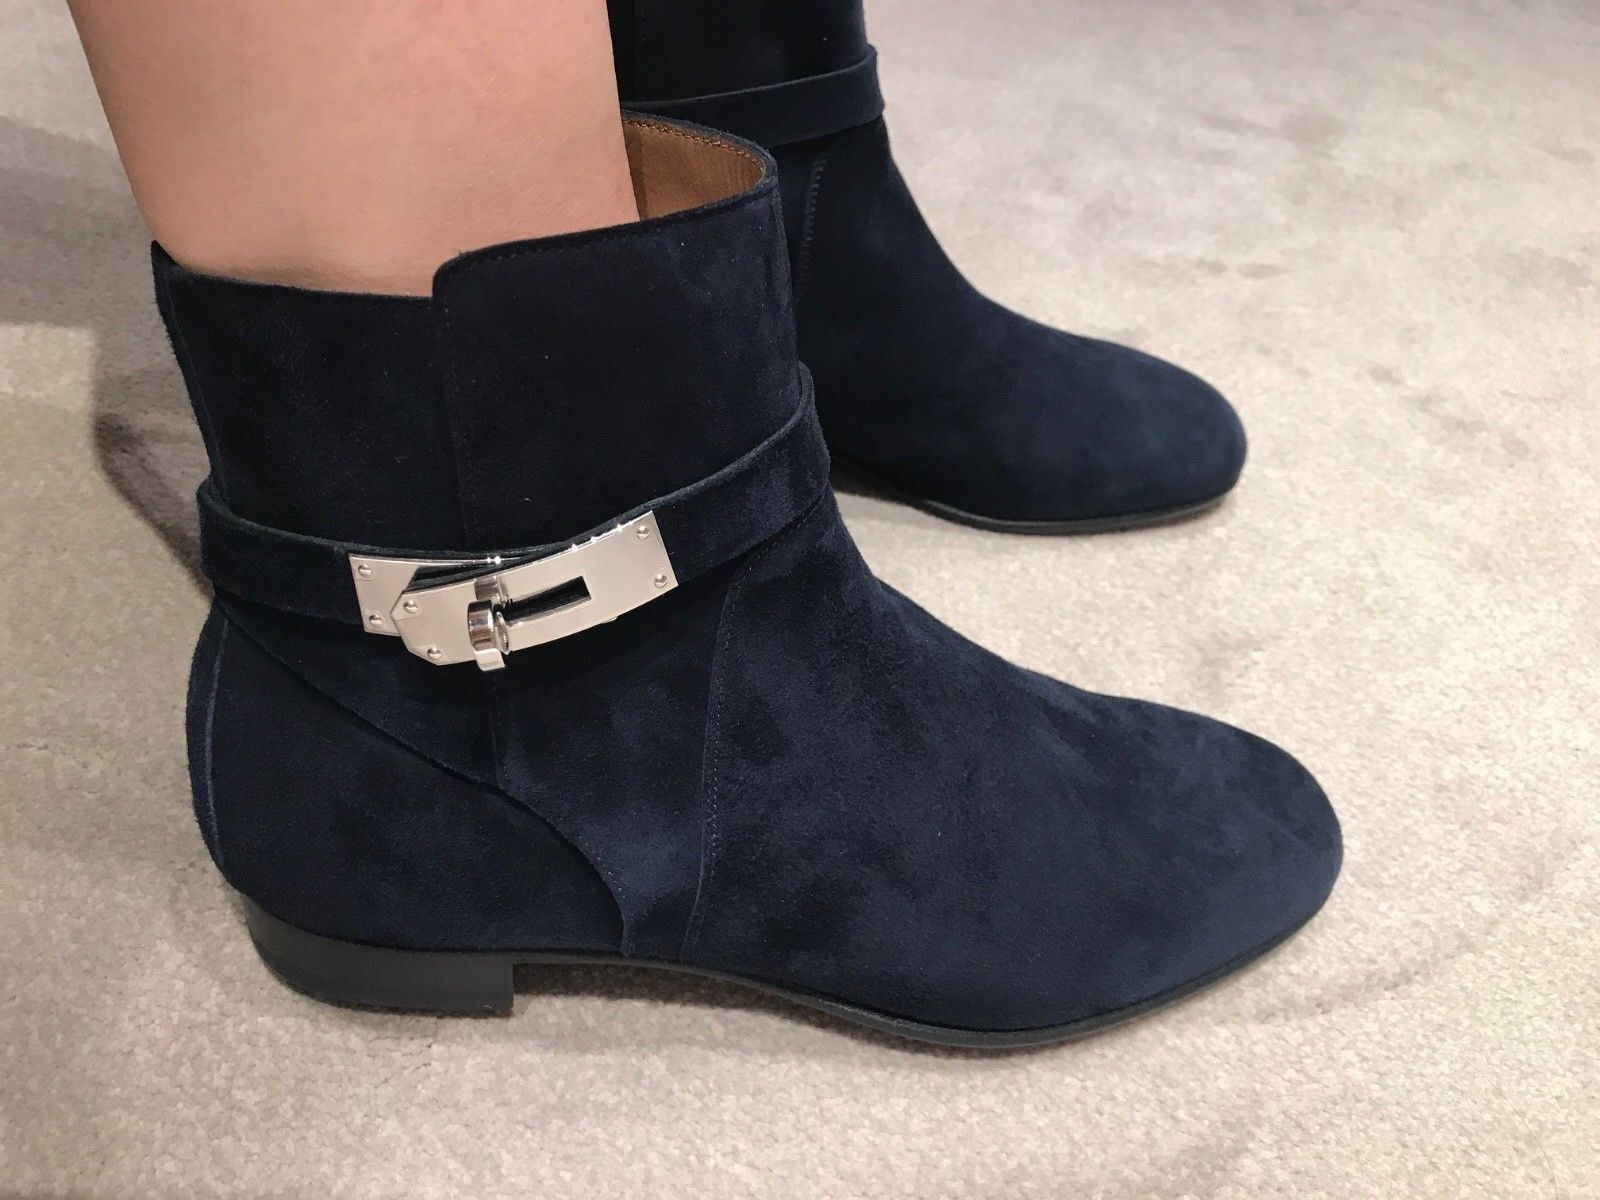 big sale b42b2 a7620 Женские сапоги или ботинки HERMES NEO BLUE MARINE SUEDE LEATHER LOW BOOTS  PALLADIUM KELLY HARDWARE SIZE 38